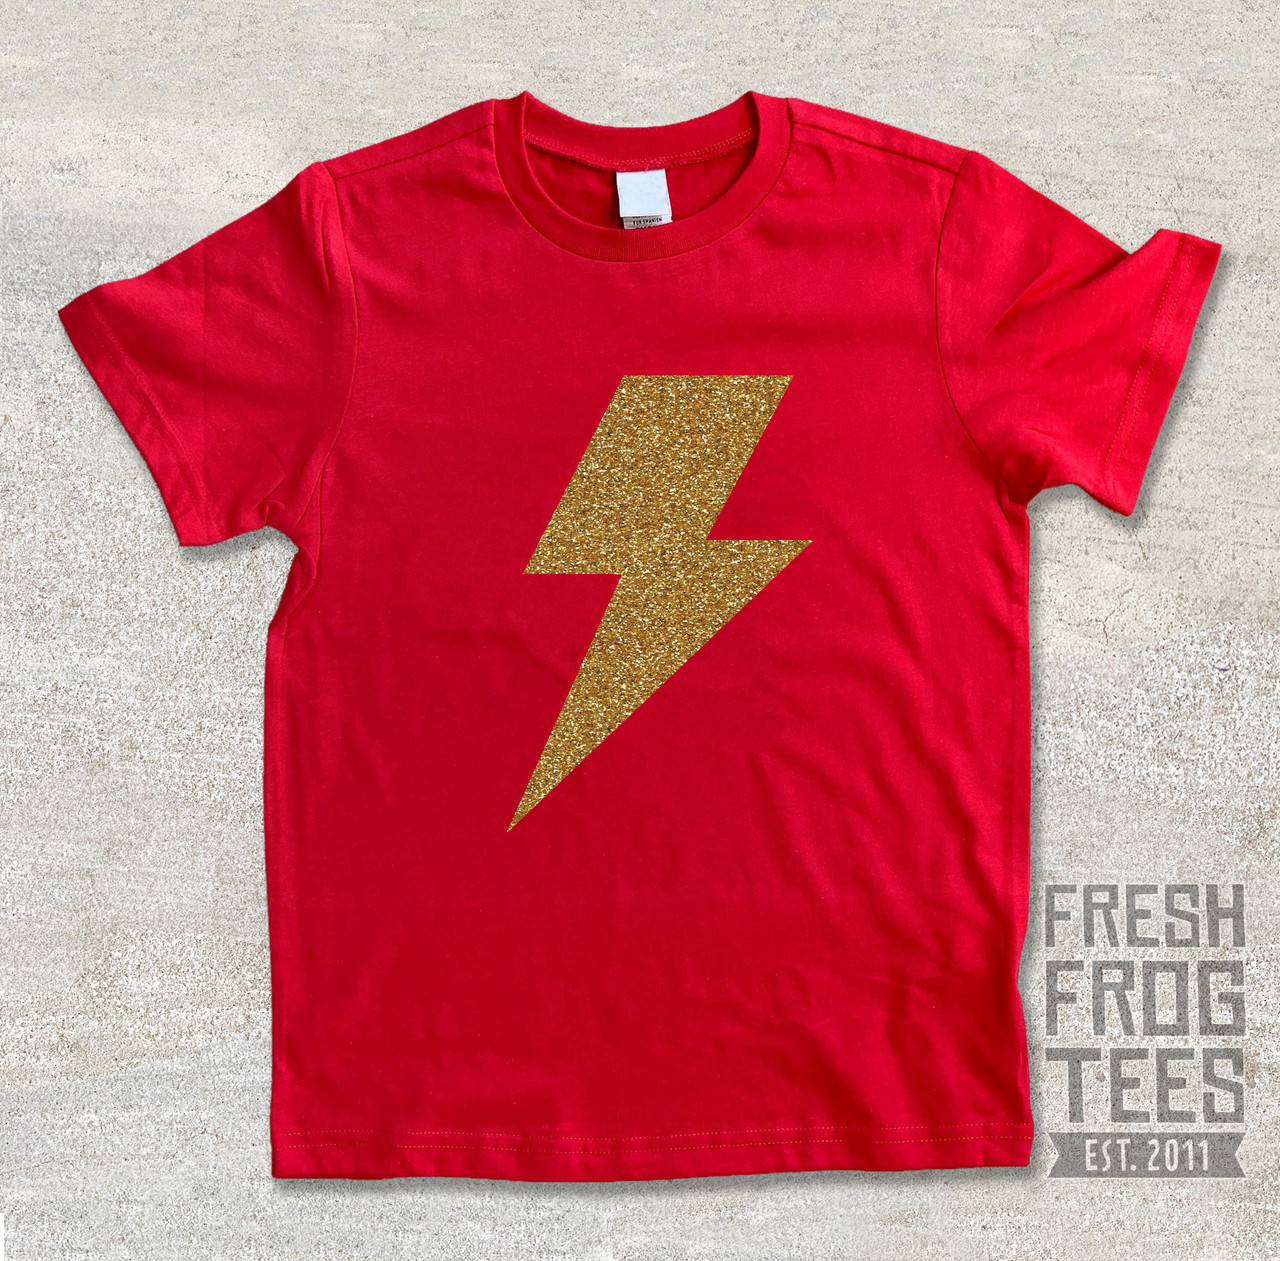 Glitter gold Lightning bolt super hero shirt for boys or girls black shirt